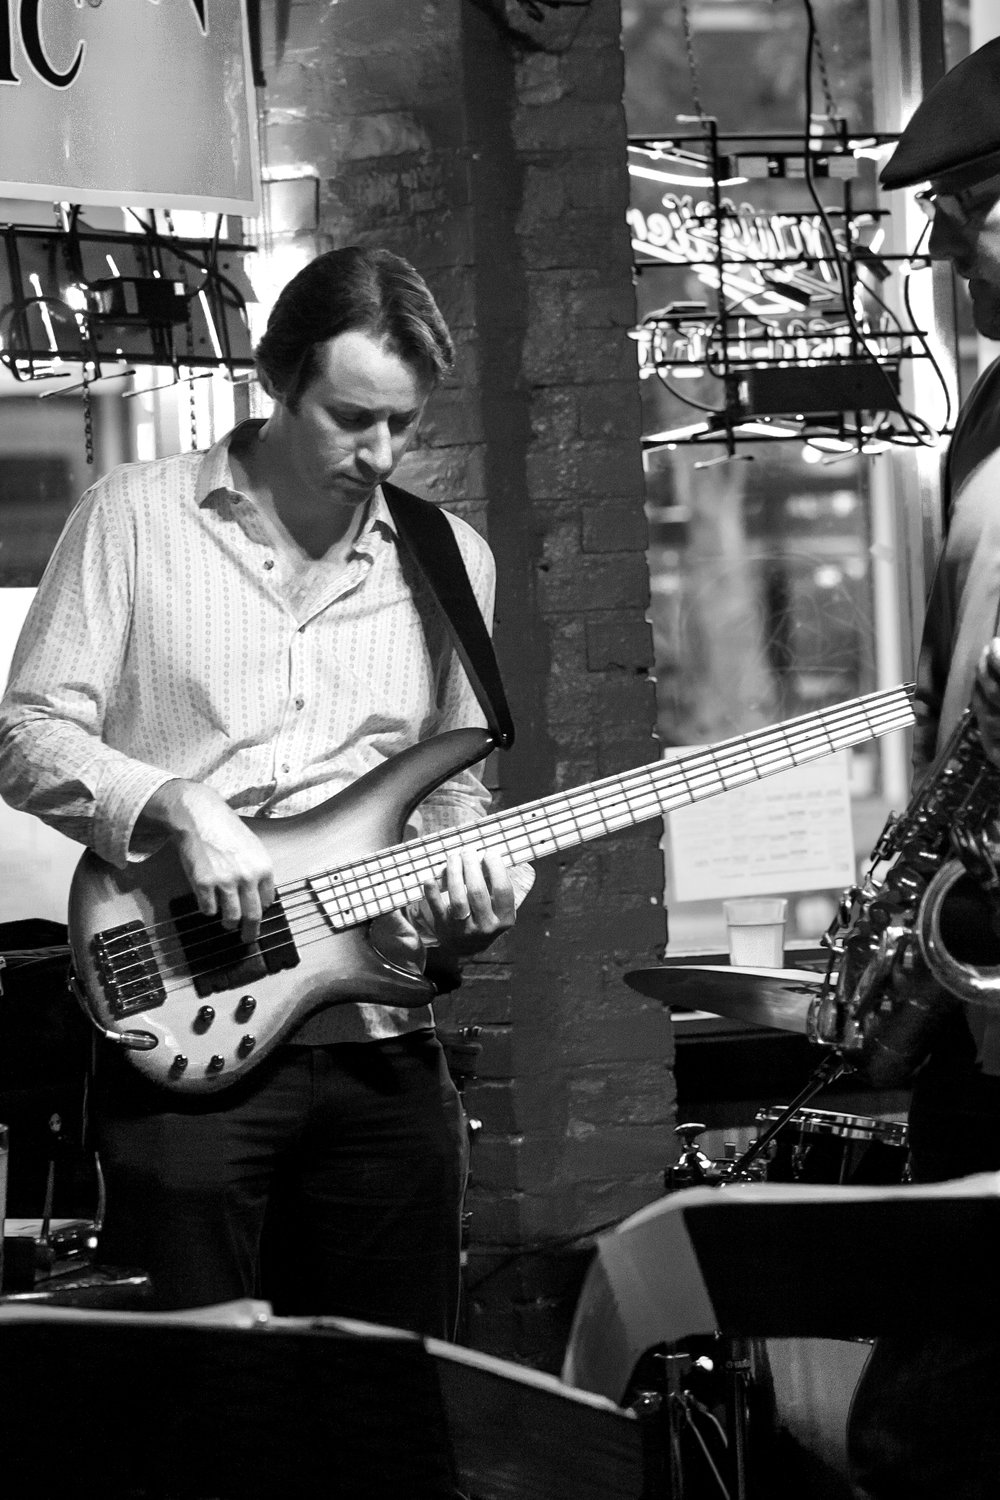 _DSC4843 VELOCITY at Bourbon Bar bw guitar.jpg